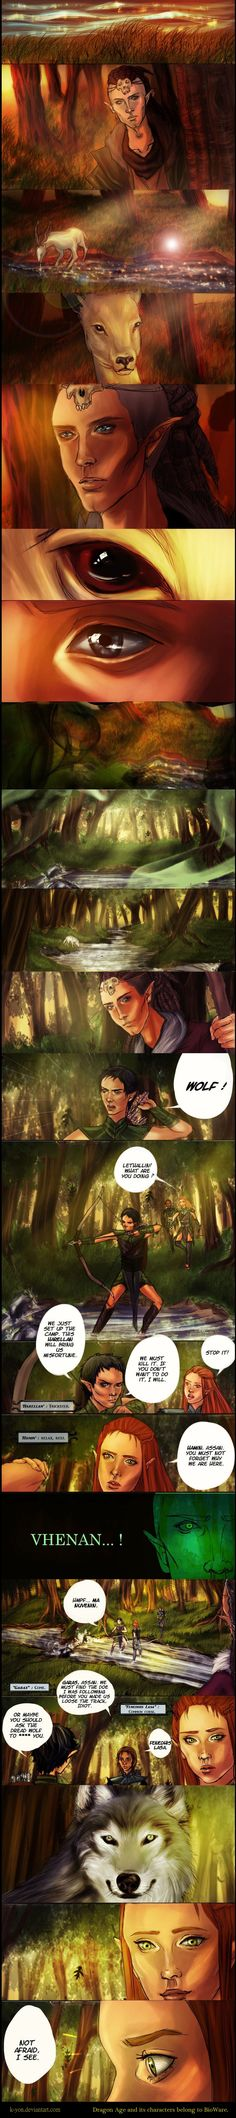 DAI - But not in this world 1 [SPOILERS] by K-yon on DeviantArt